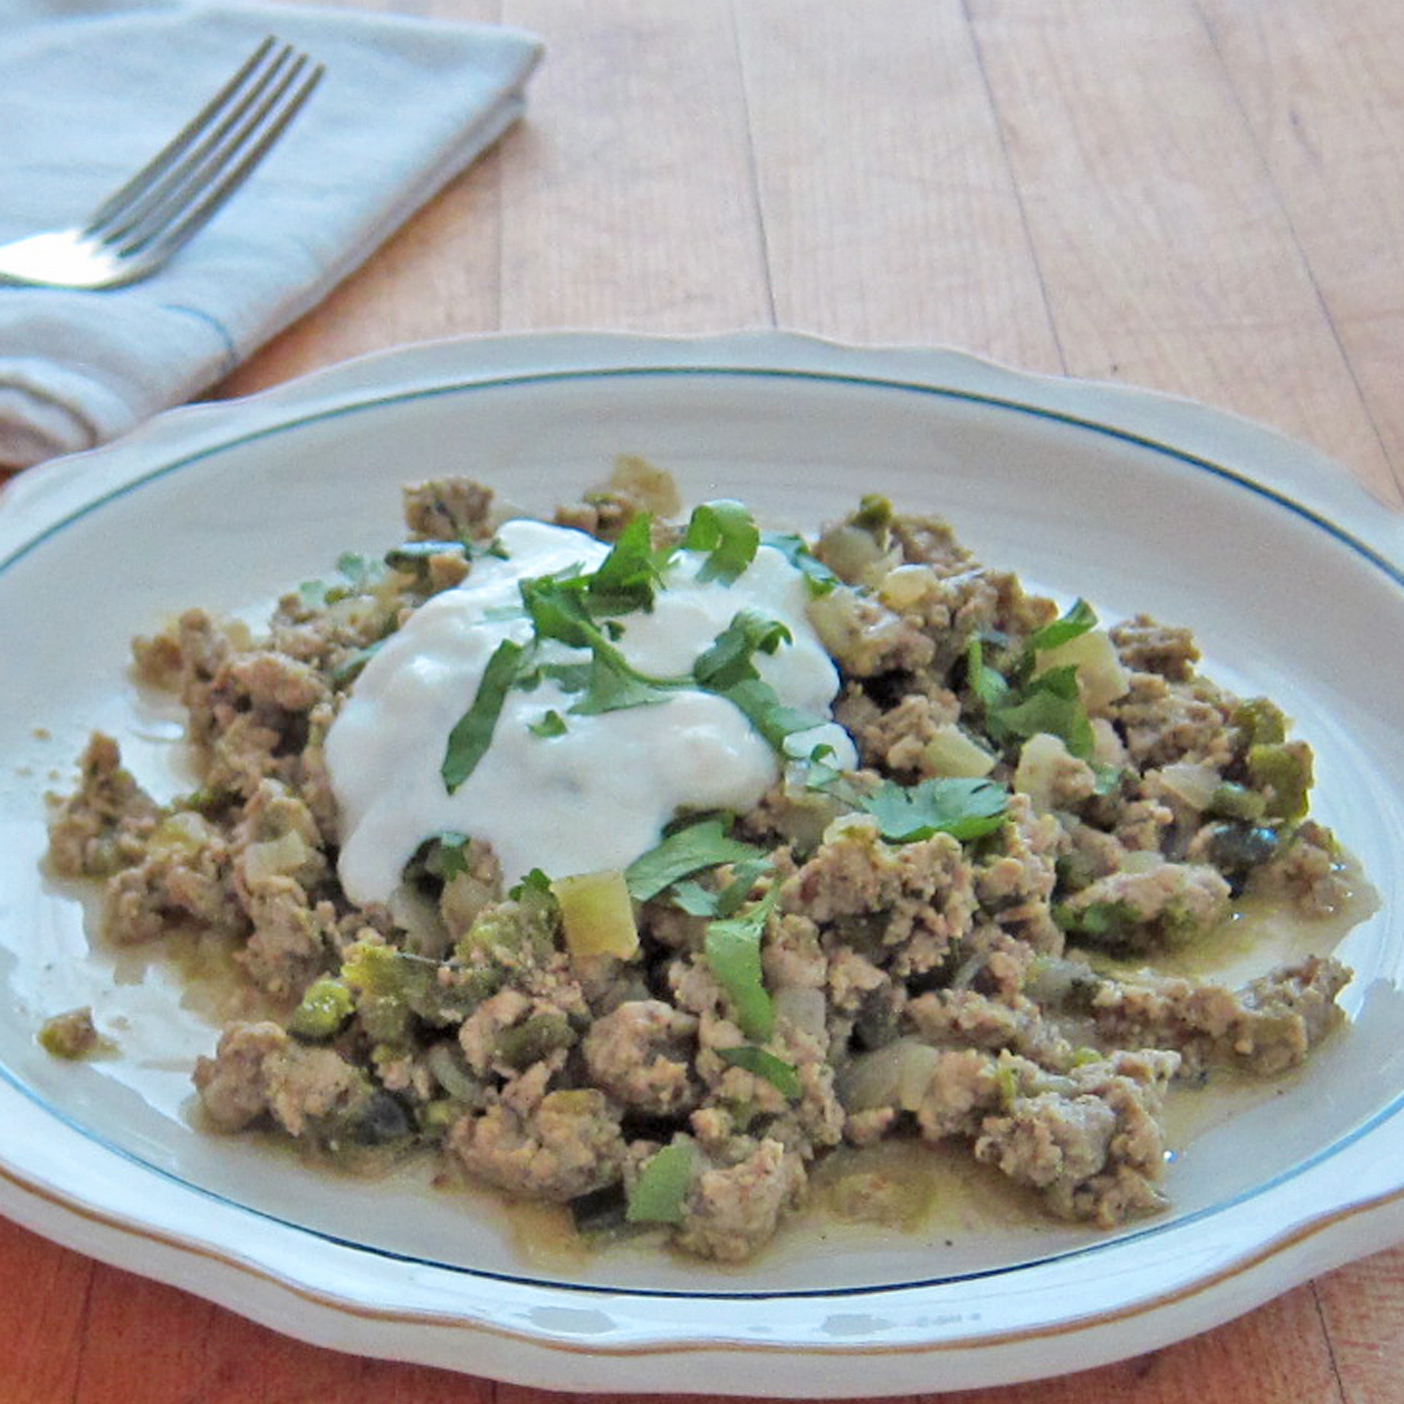 HD-201405-r-chicken-chili-with-lime-sour-cream.jpg